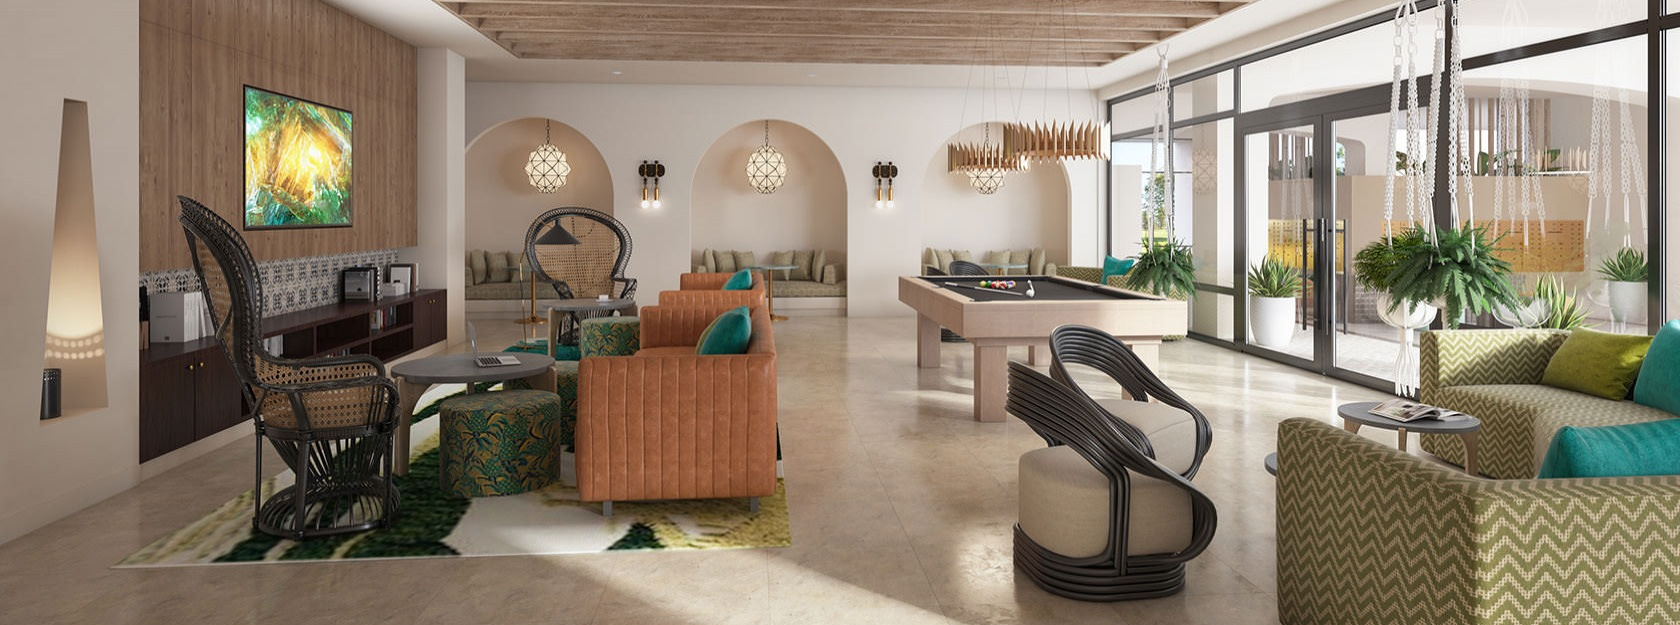 spacious clubroom rendering with billiards table and lounge area